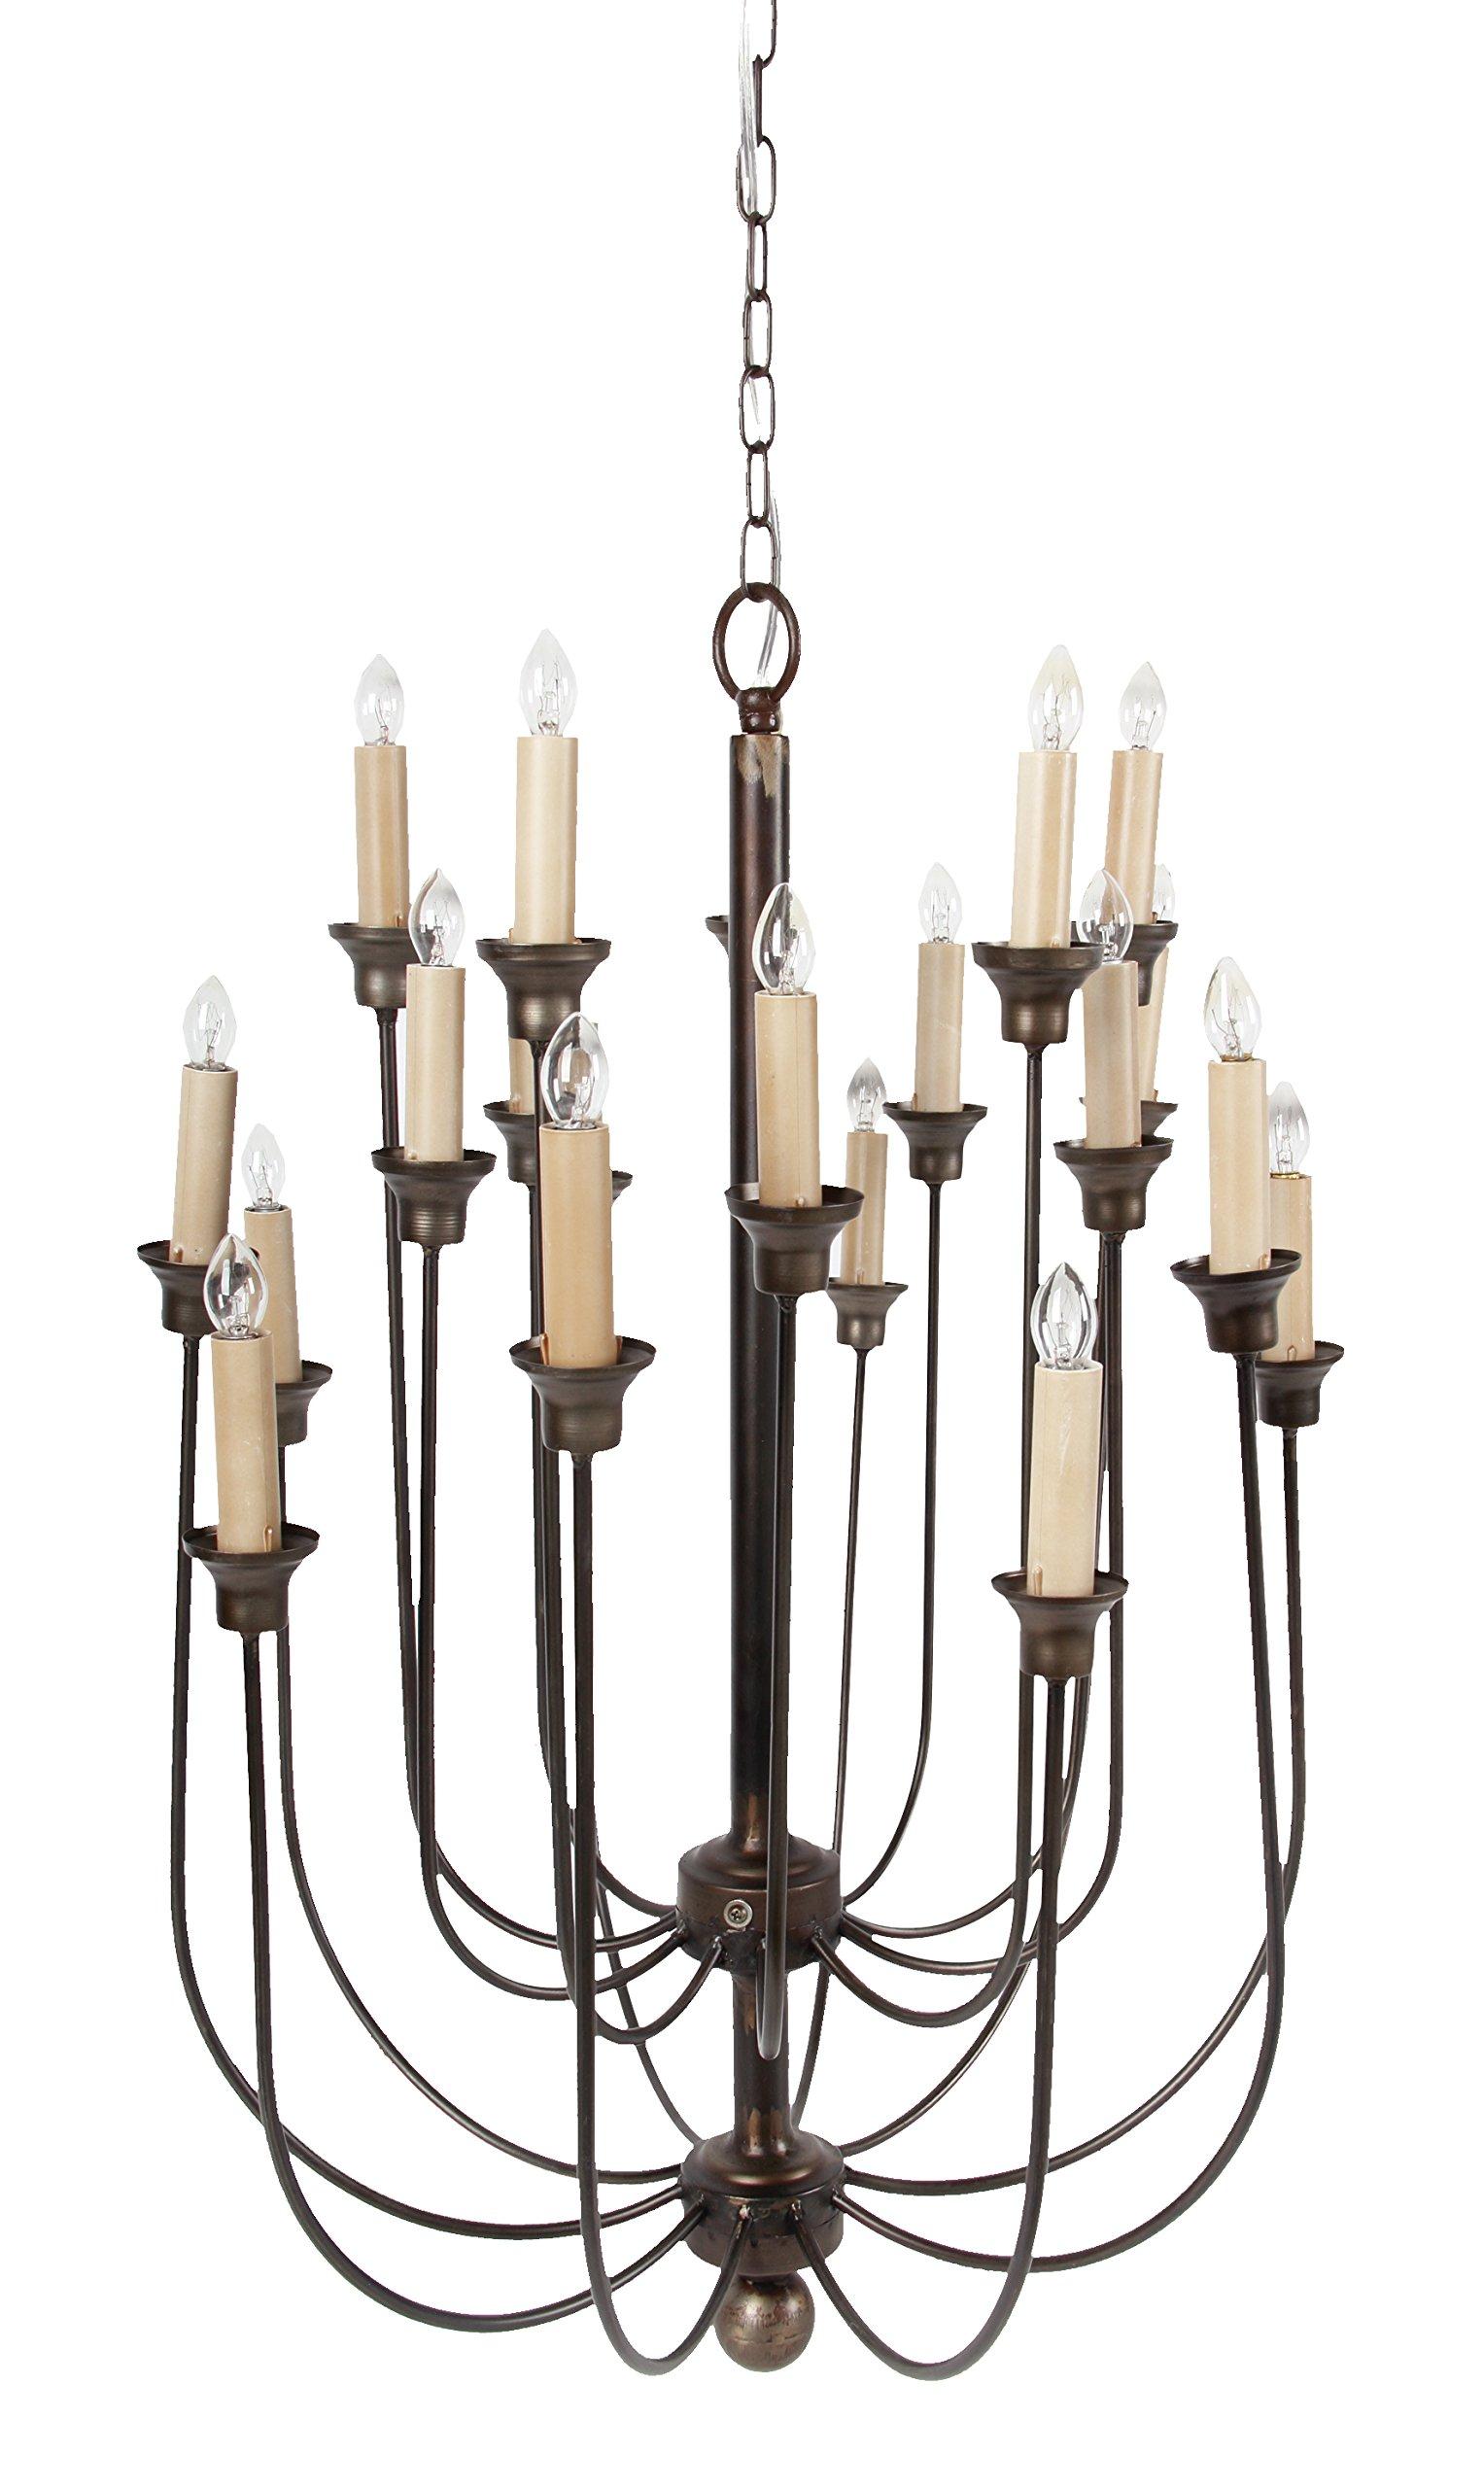 A&B Home 37825 Langley 20 Light Candle Chandelier, 22 by 22 by 29.5-Inch by A&B Home